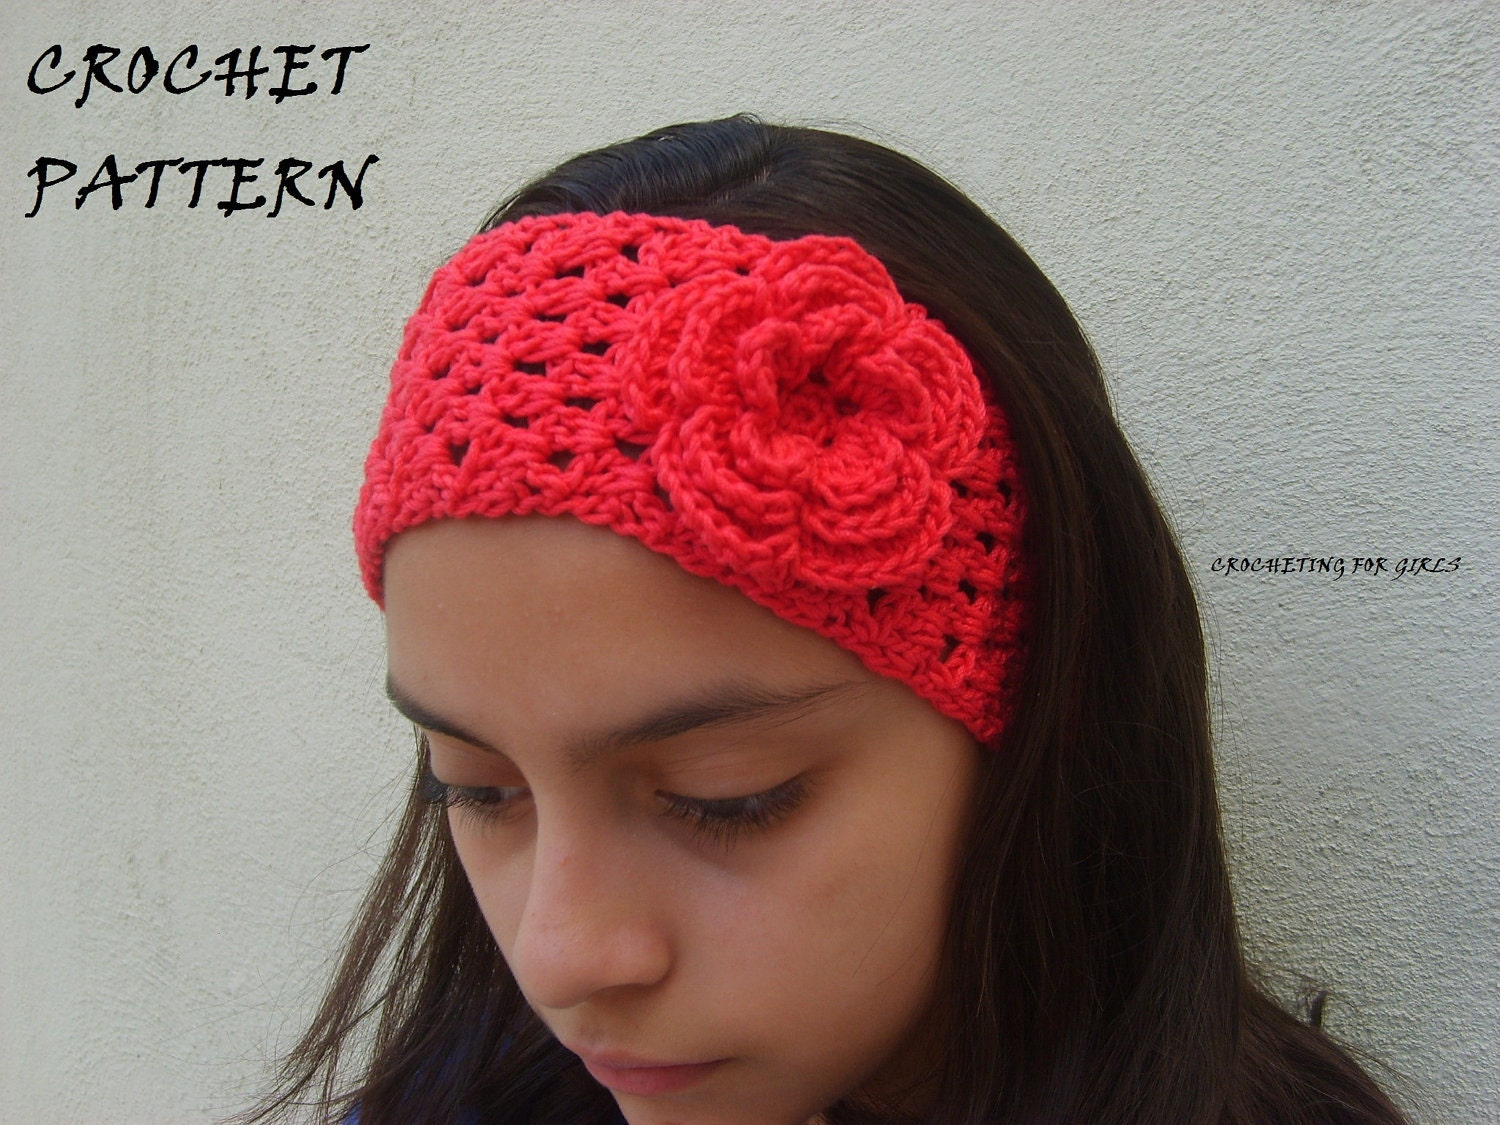 Free Crochet Pattern For Easy Headband : Crocheted headband/headwrap with flower by crochetingforgirls